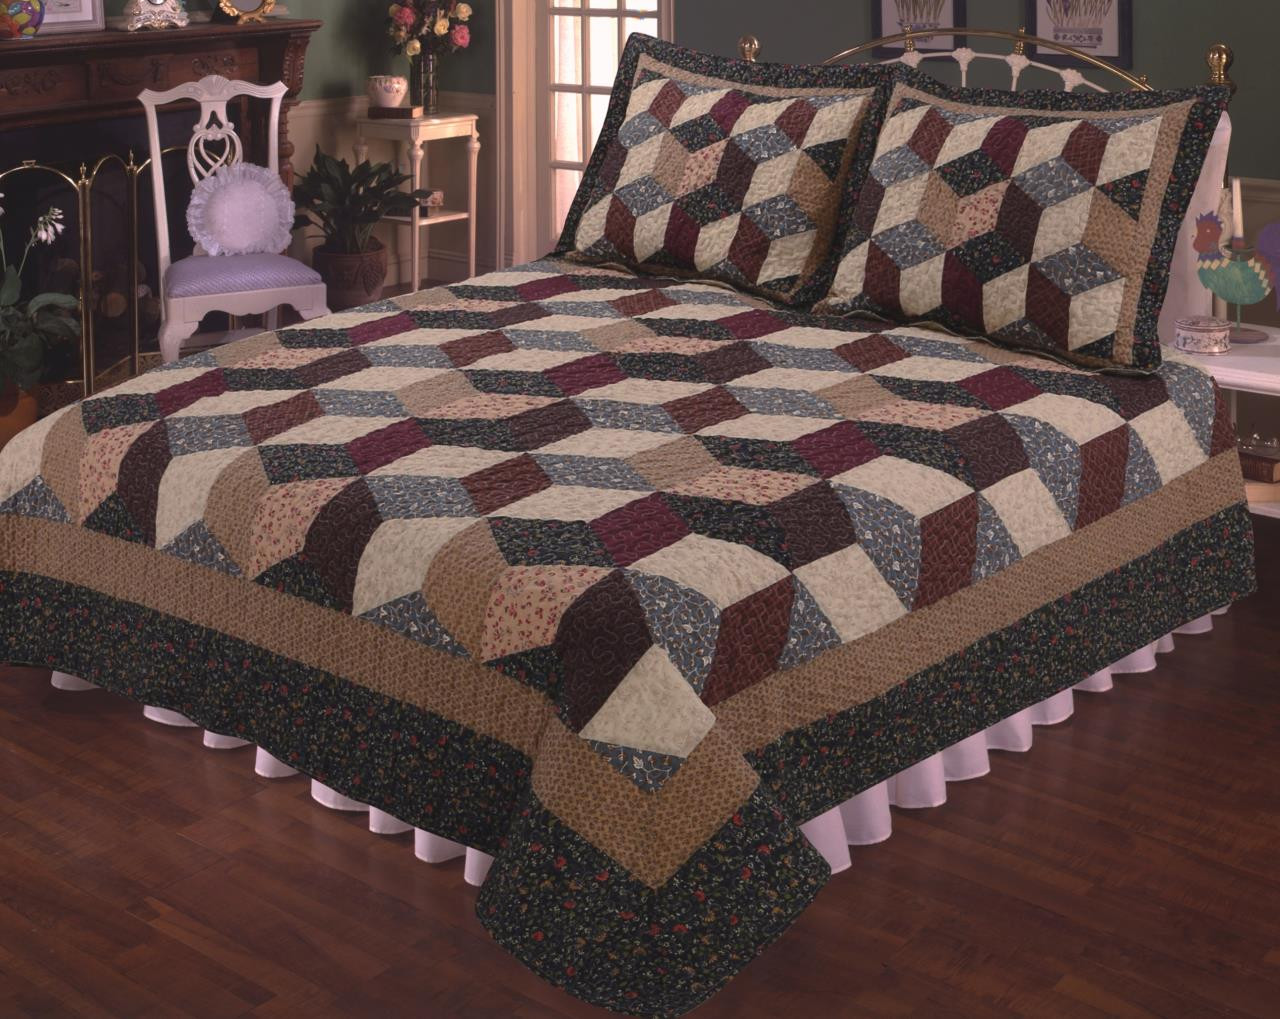 Tumbling Block Quilt By Elegant Decor Paul S Home Fashions